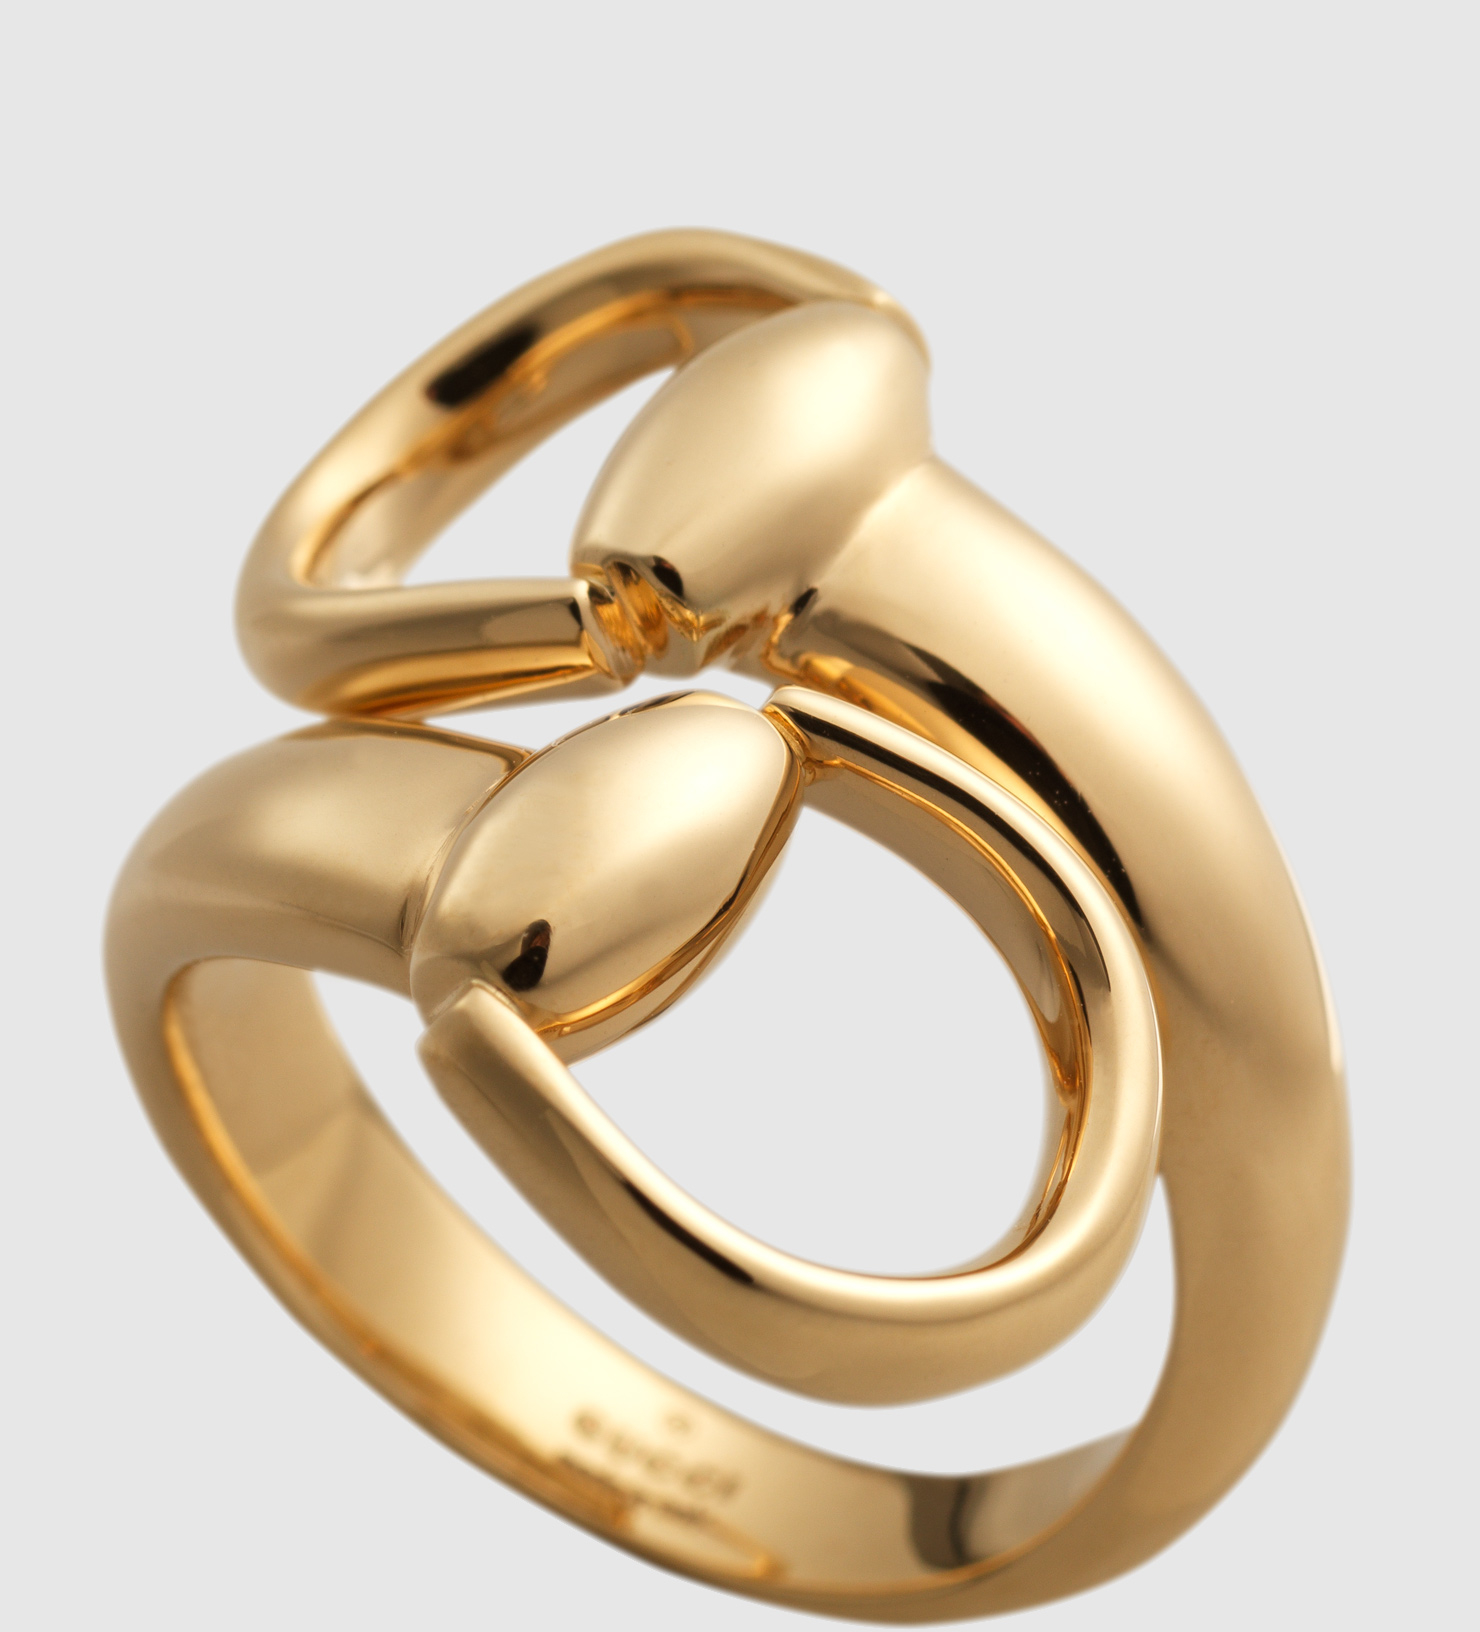 726e23439 Gucci Horsebit Ring In Yellow Gold in Yellow - Lyst